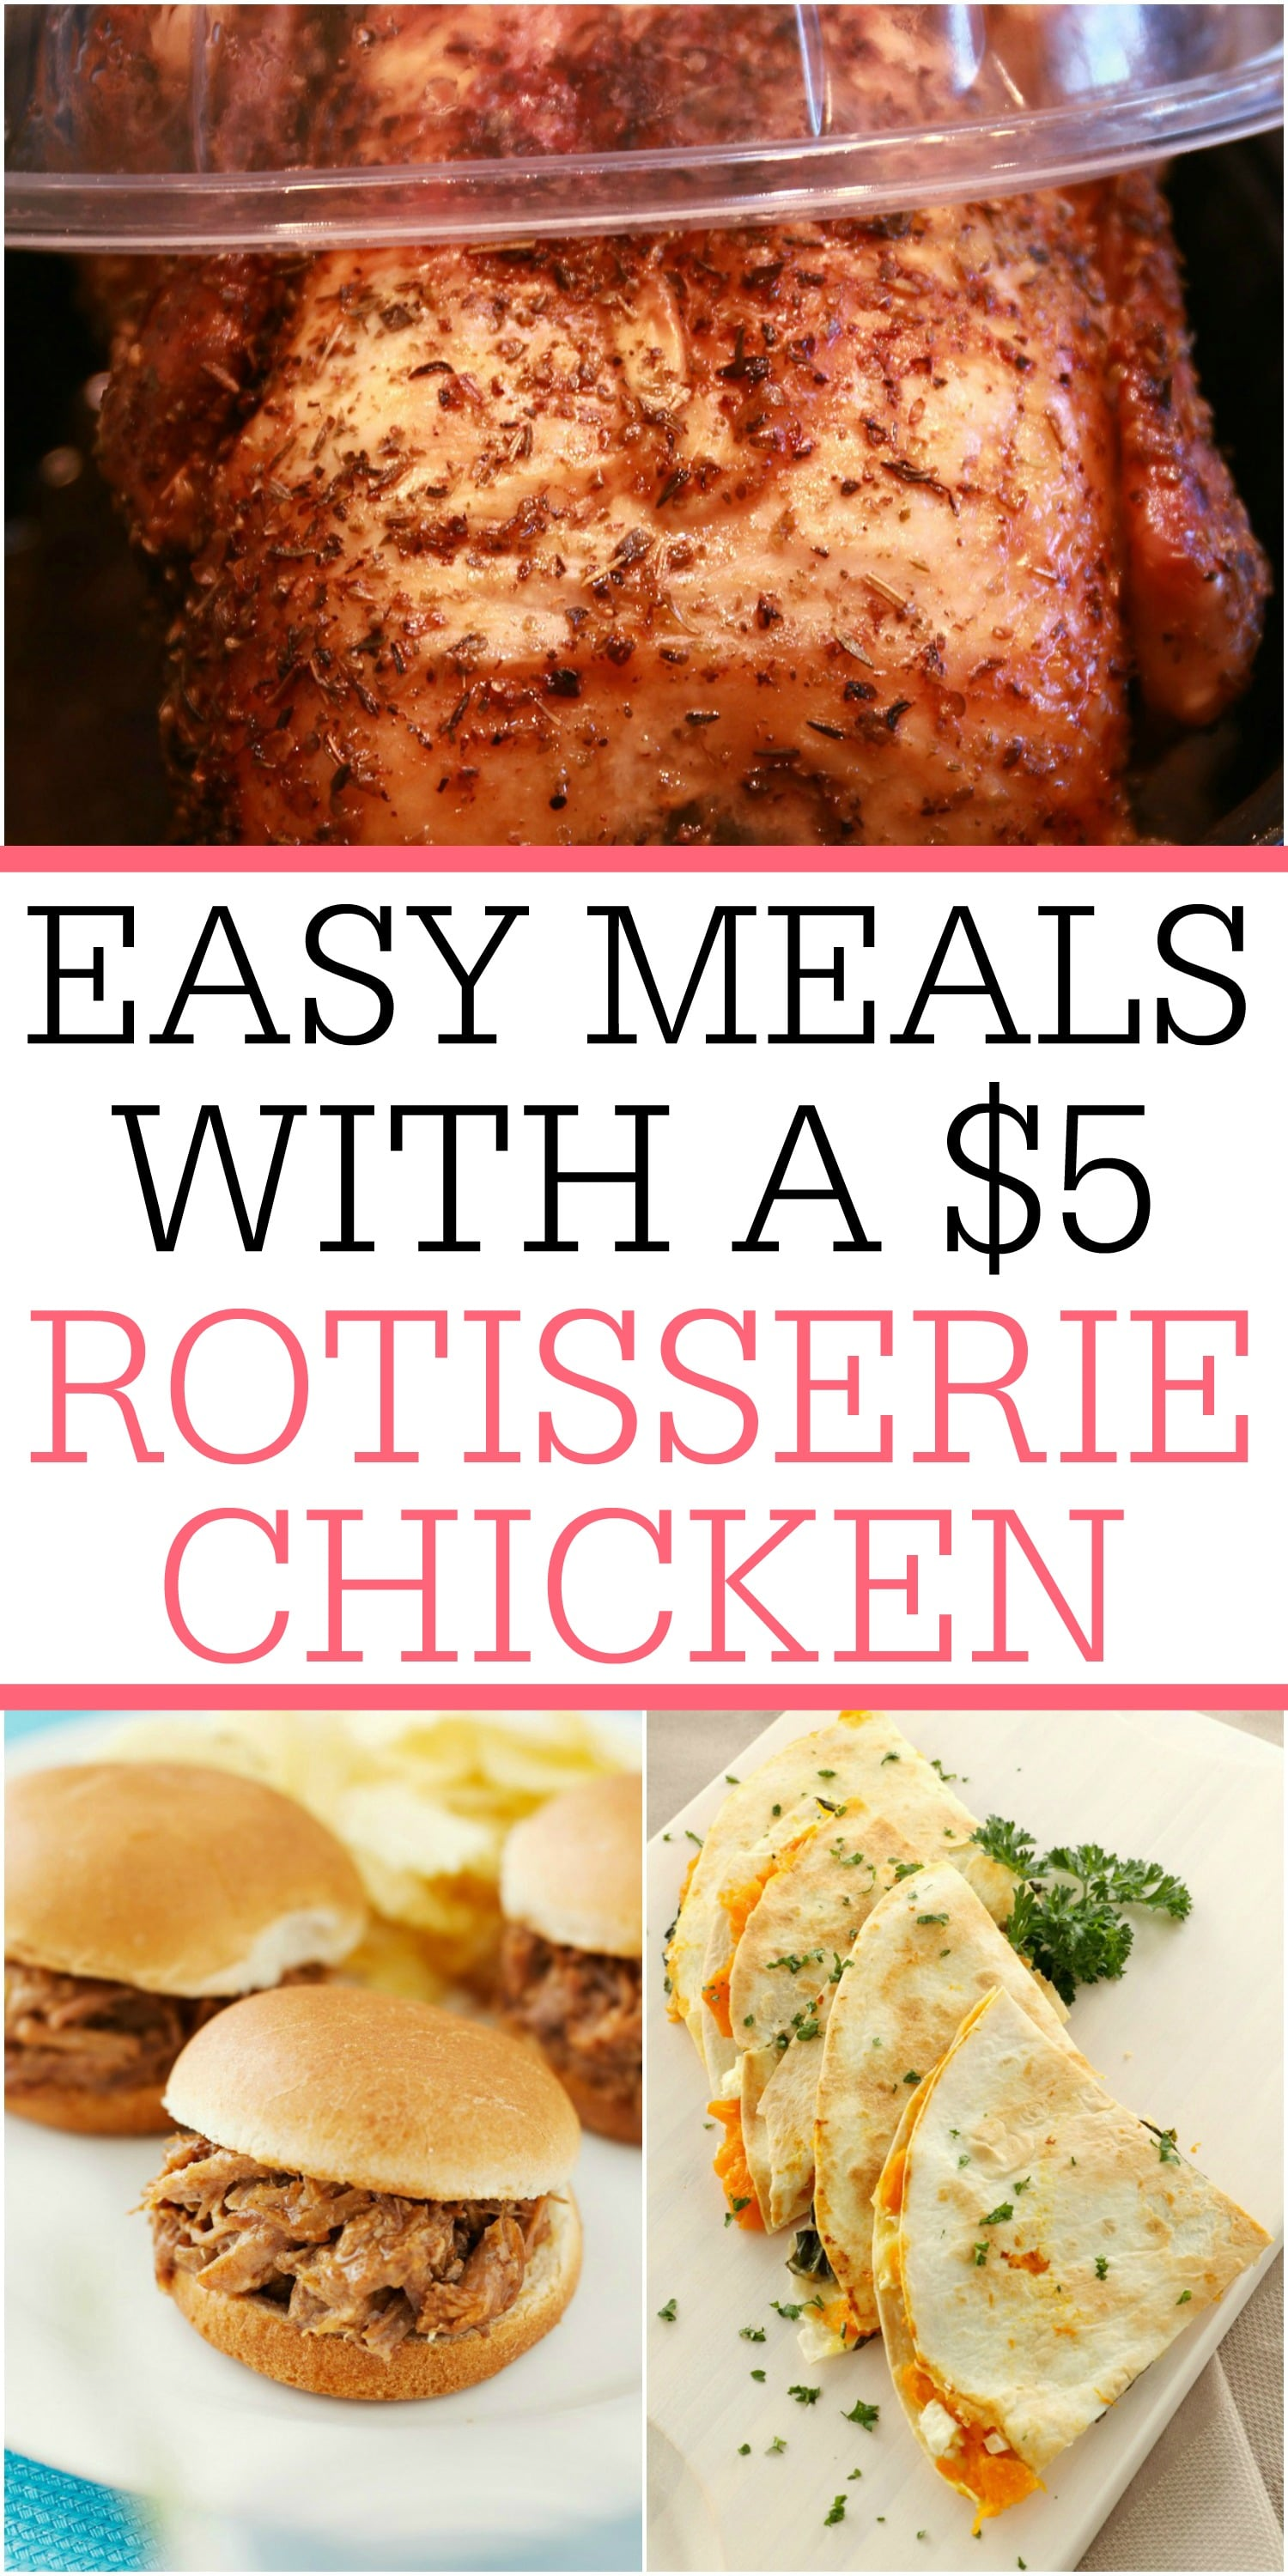 Skip the carry-out and save money with a rotisserie chicken. You can make these easy meals with a $5 rotisserie chicken. #4 is my favorite!